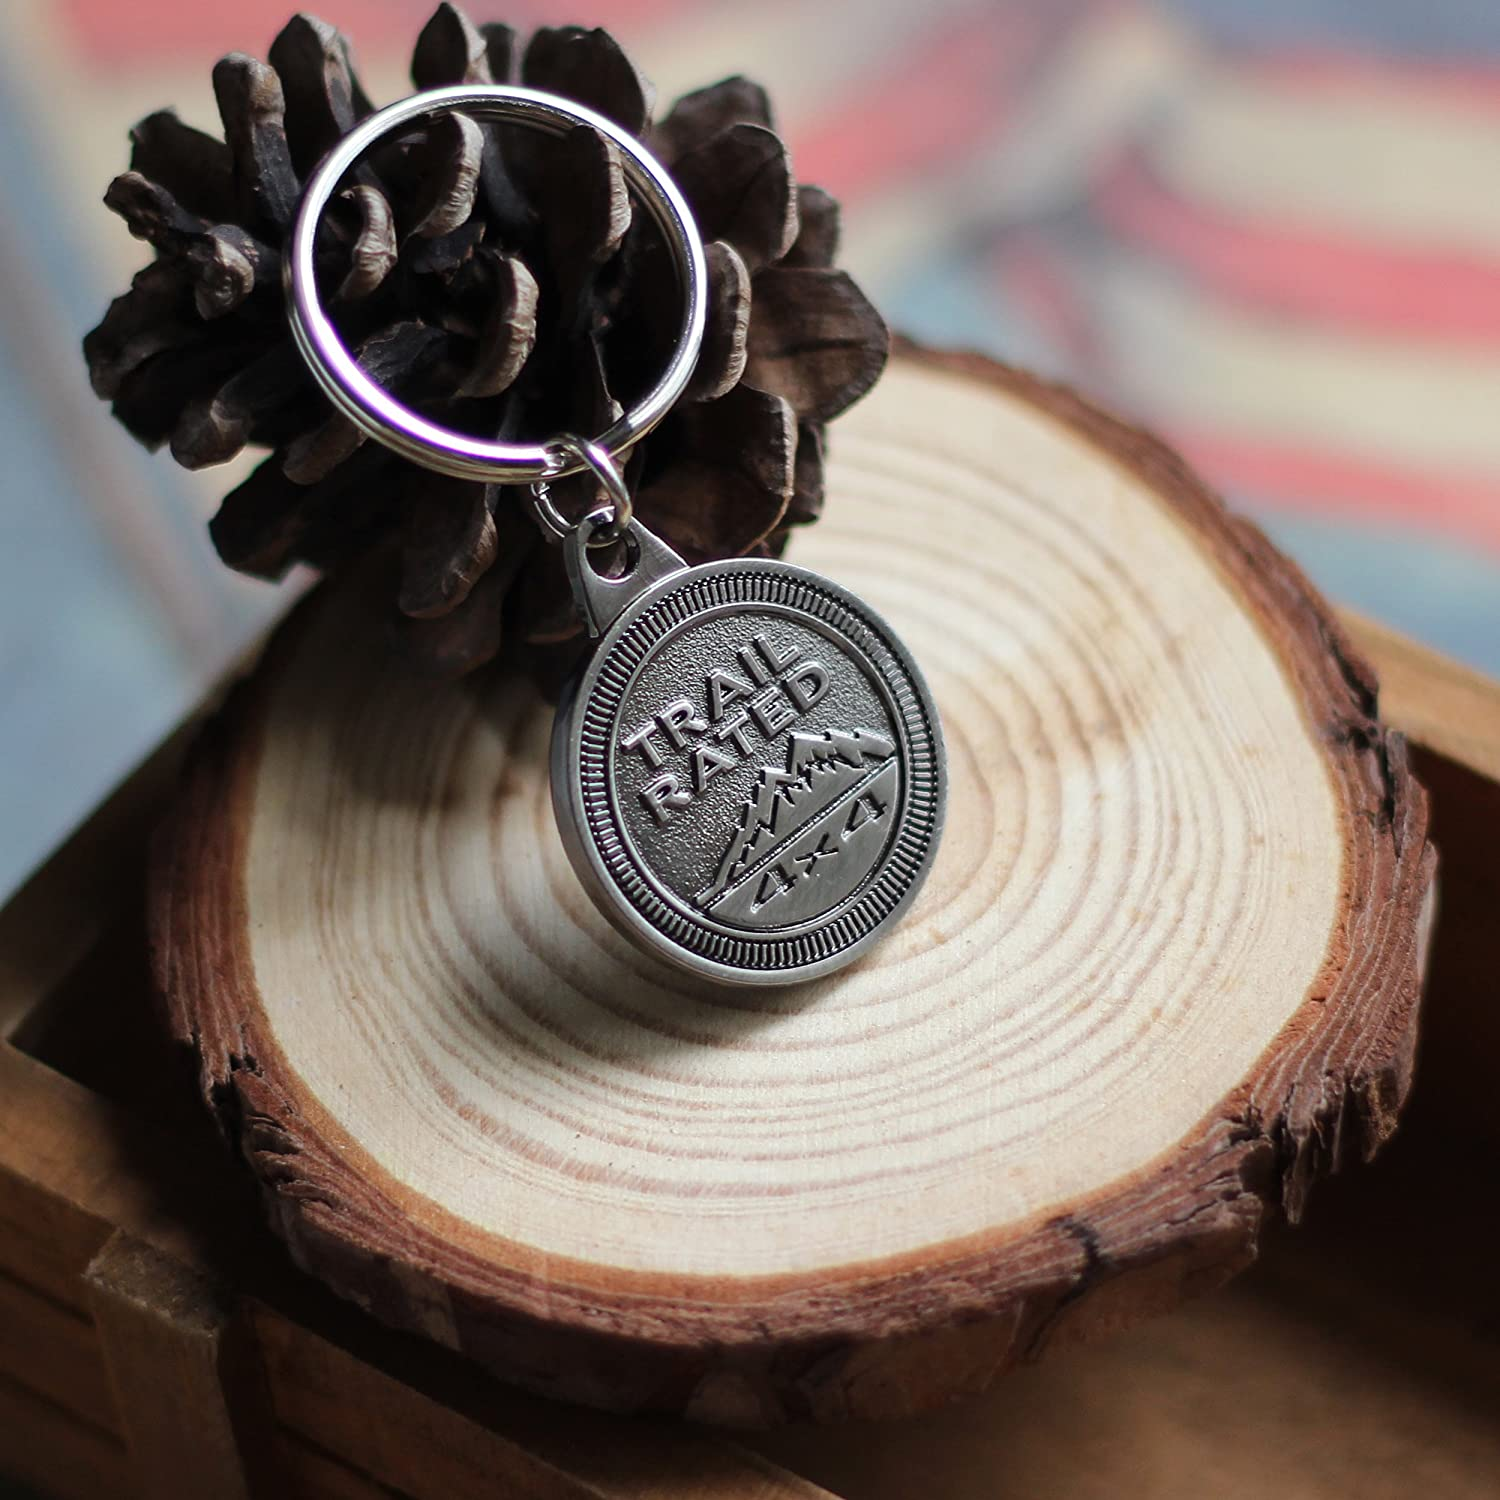 LROEZR 3D Font Jeep Badge Key Fob Antique Silver Keychain Chain Ring for Driver Enthusiast Automotive Keyring 5559031588